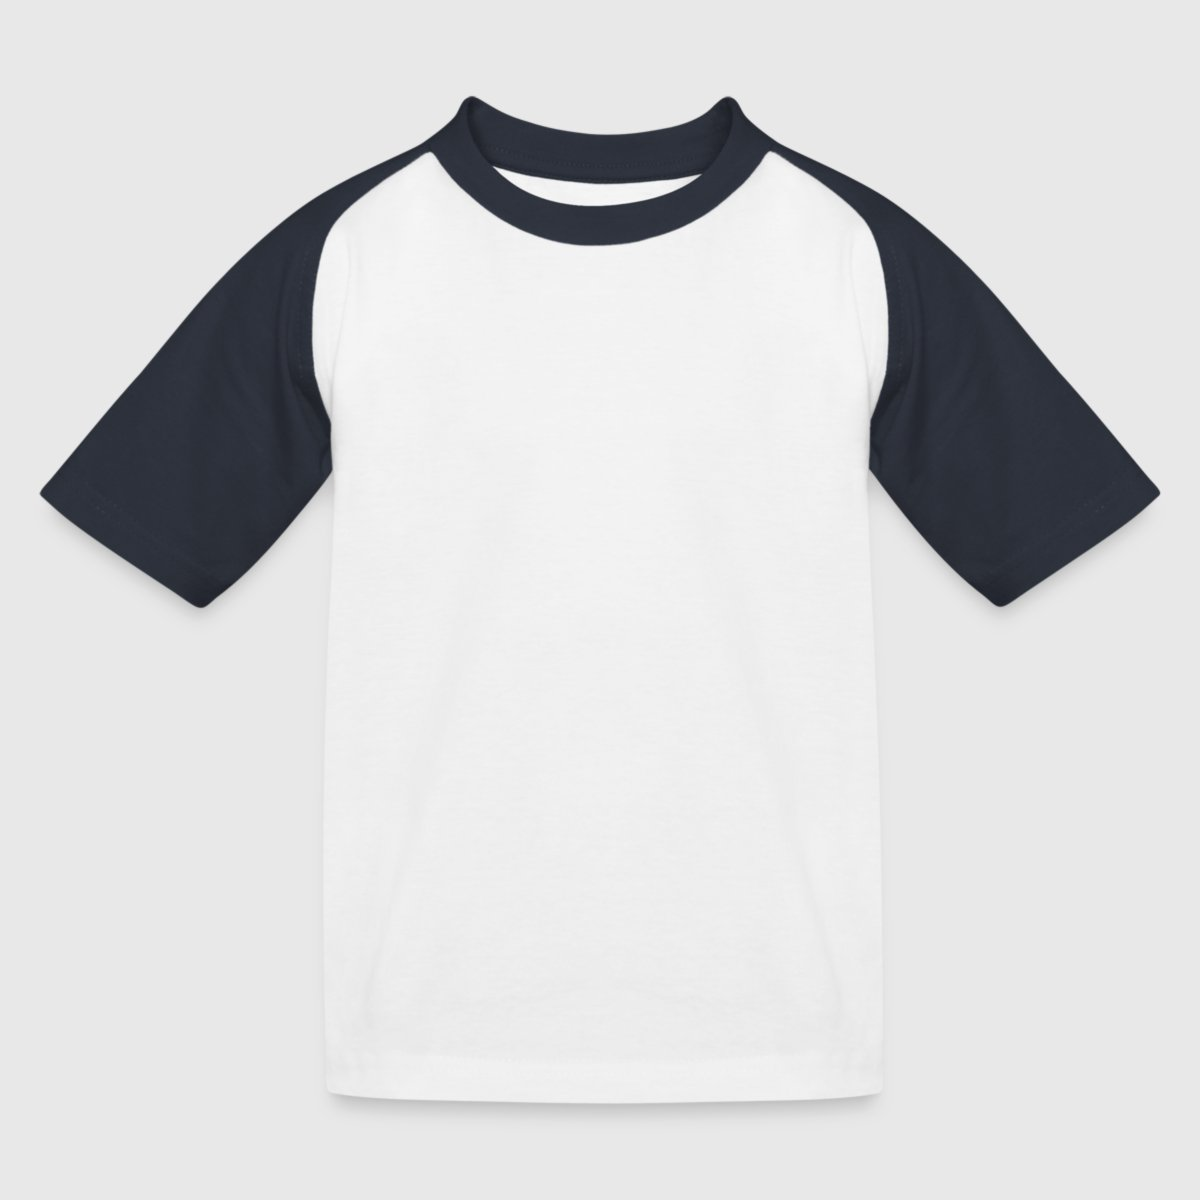 Kinder Baseball T-Shirt - Vorne